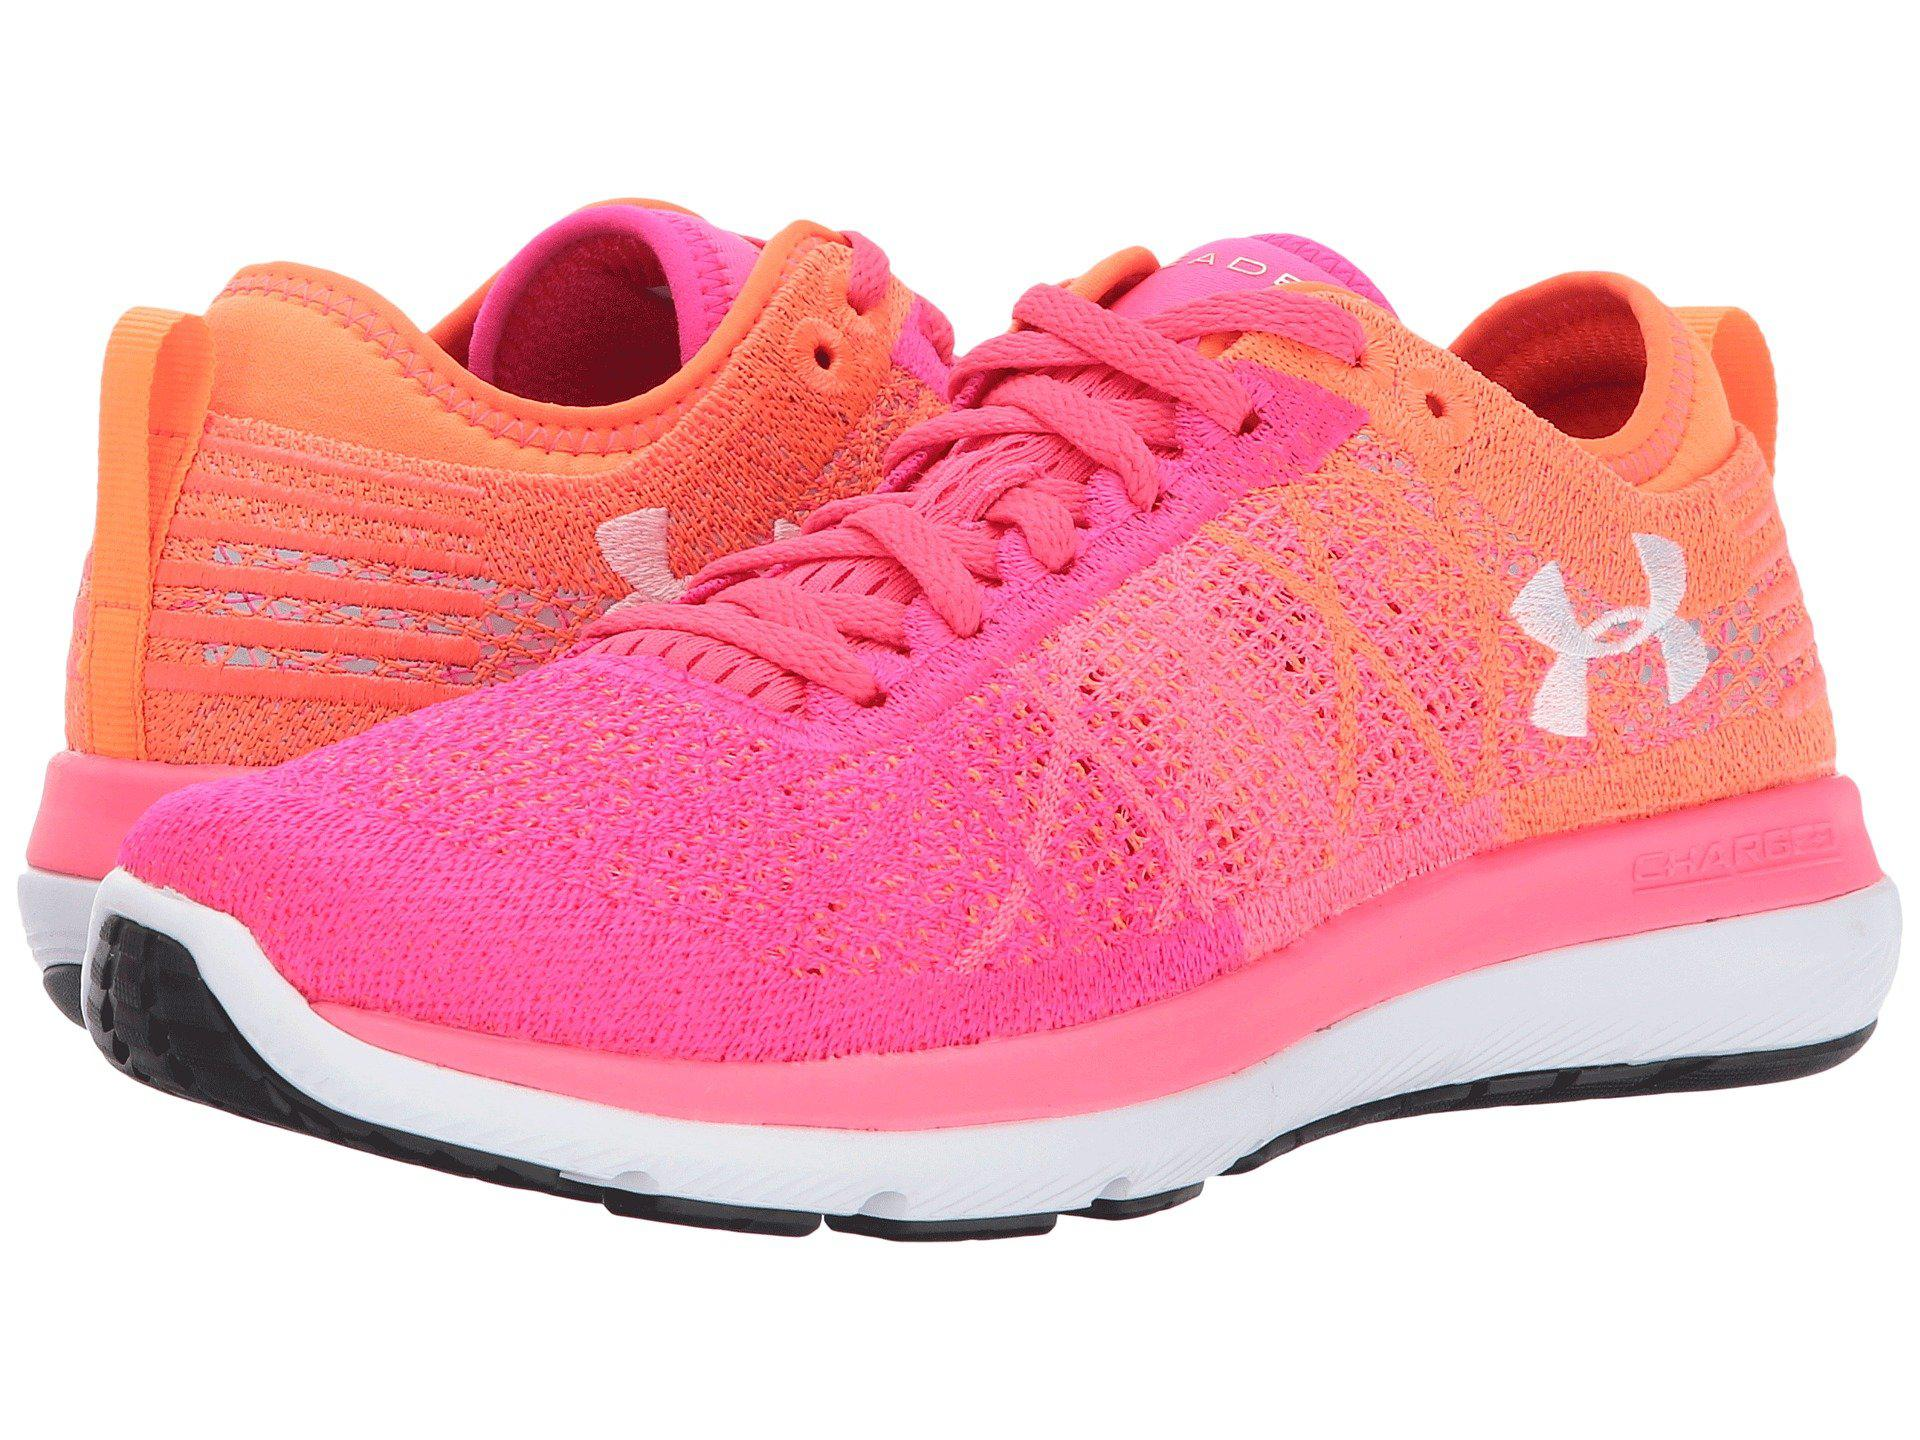 Lyst - Under Armour Threadborne Fortis 3 in Pink - Save 33% 5882a4a624348